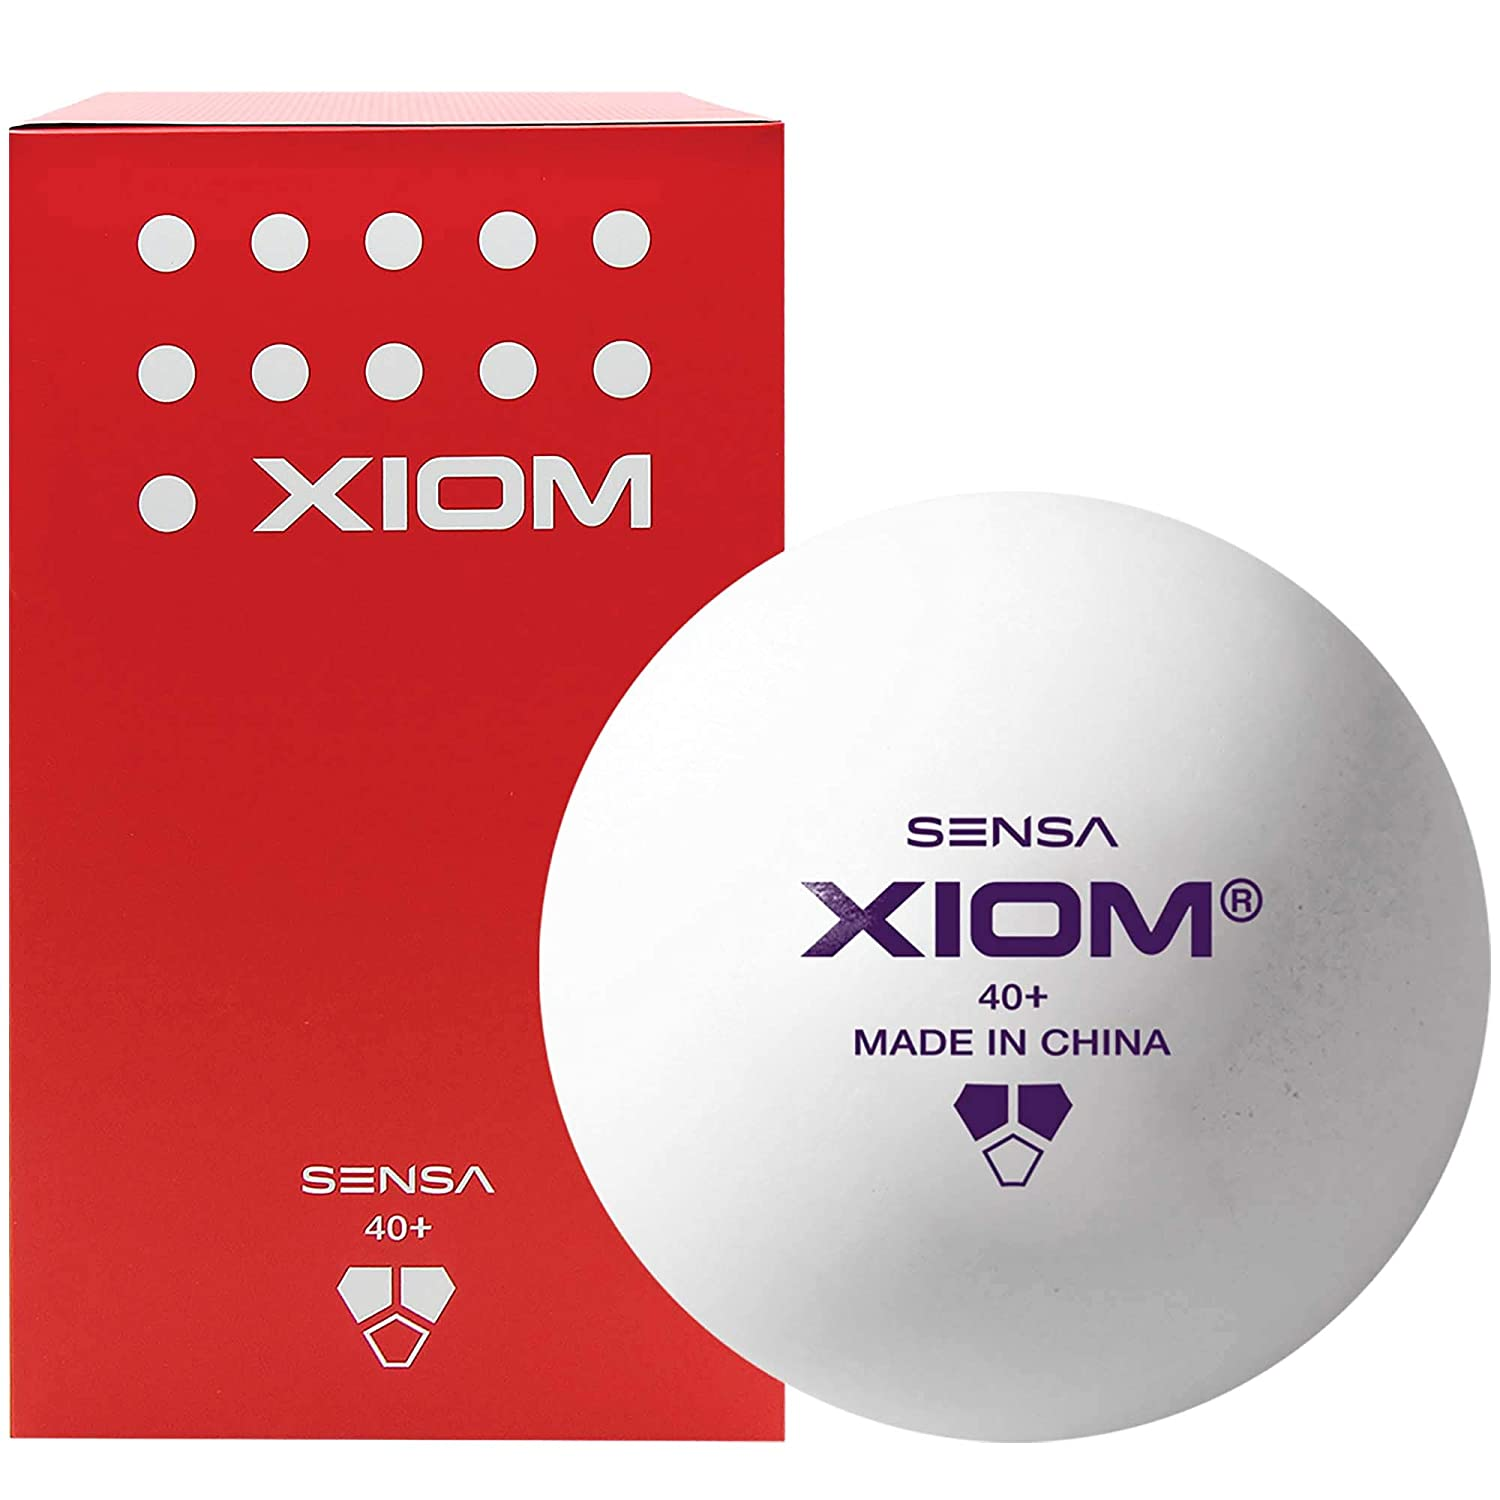 XIOM 100 SENSA LIFETIME+ PRACTICE TRAINING ABS 2 STAR POLY BALLS